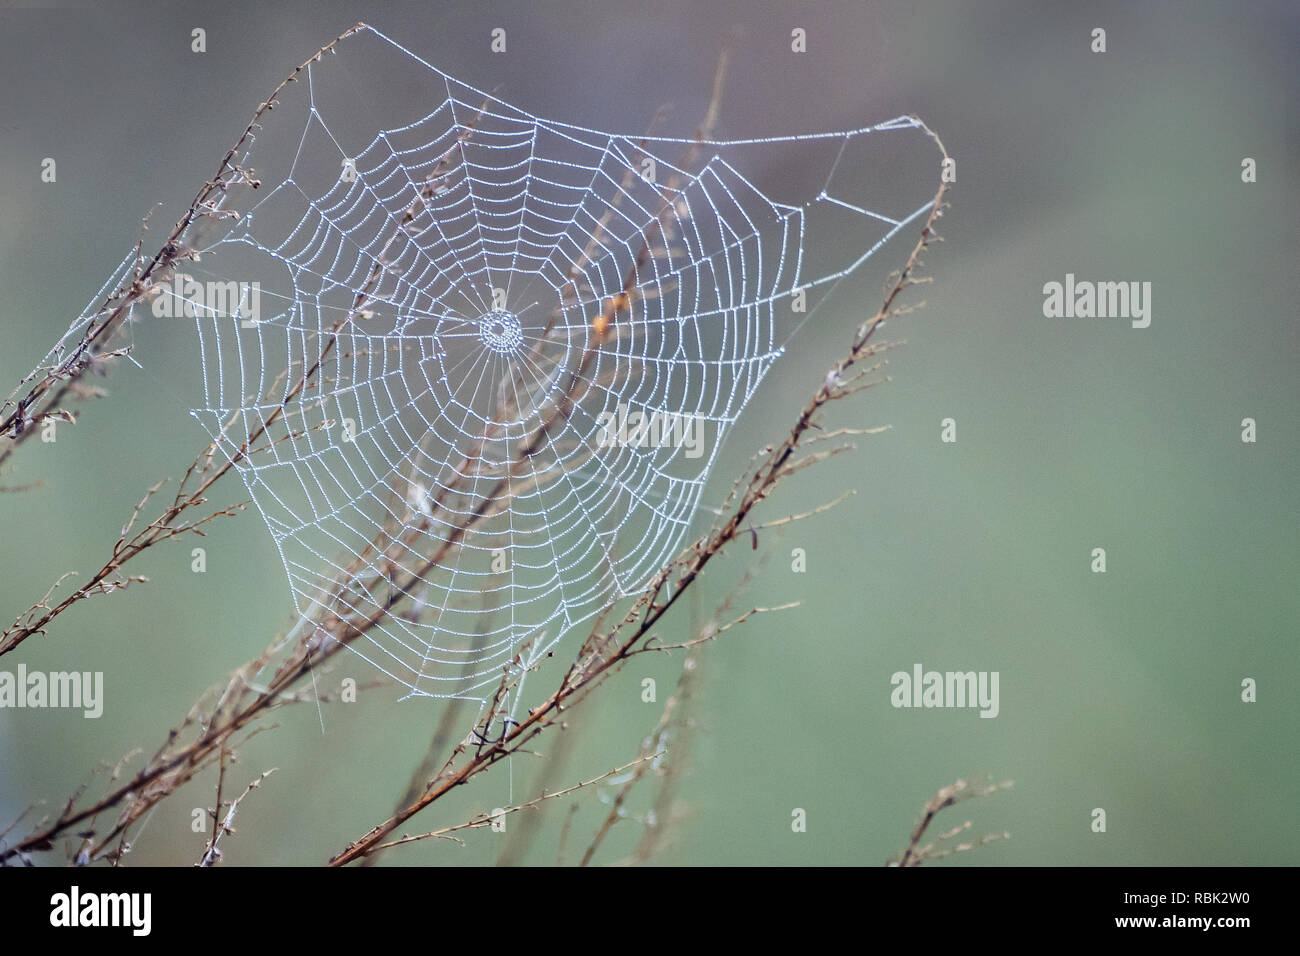 Orb spider web on a  late April morning - Stock Image